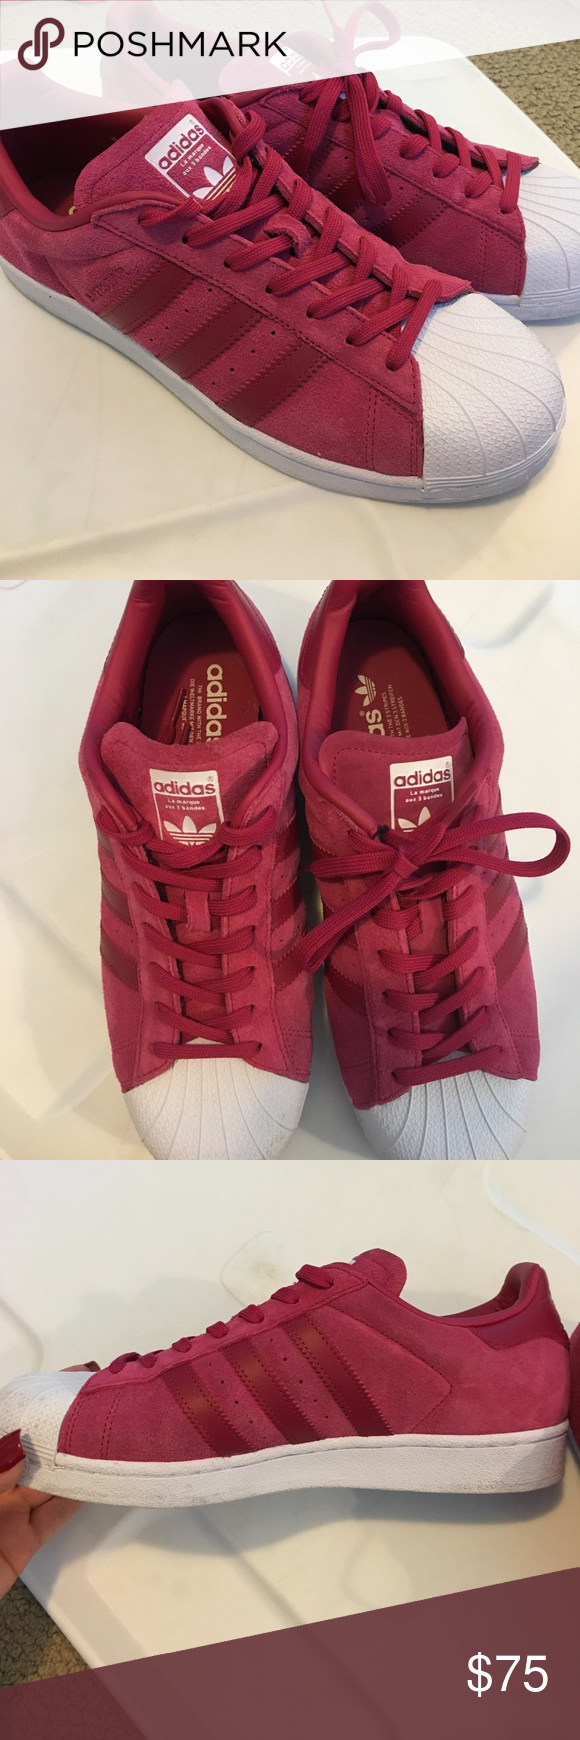 79fd86dd76ef Adidas superstar red velvet Red Velvet Superstar Sneakers... excellent  condition... worn only 2 times adidas Shoes Sneakers